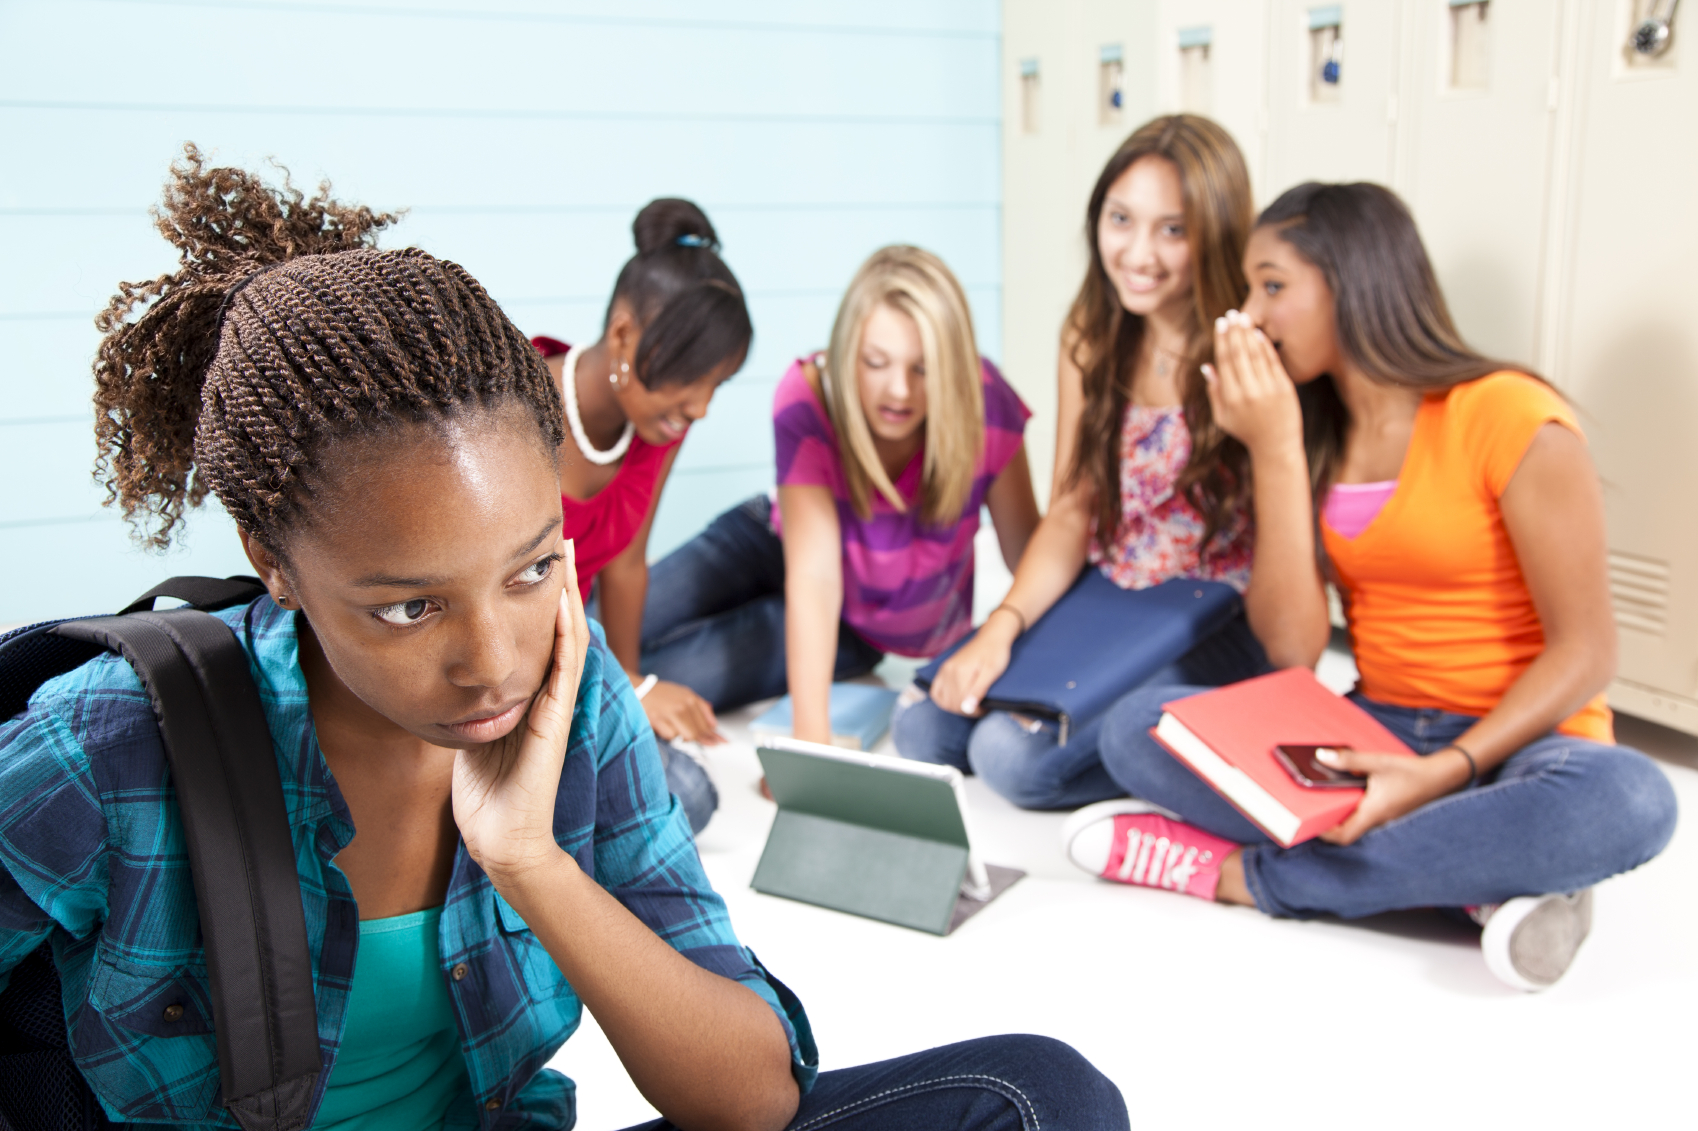 cyberbullying among teens and adolescents Finally, targets of cyberbullying often feel like they can't get away from the bullying if someone is bullying you at school, when you leave for the day it's over but cyberbullying can follow you home, and continue all night.